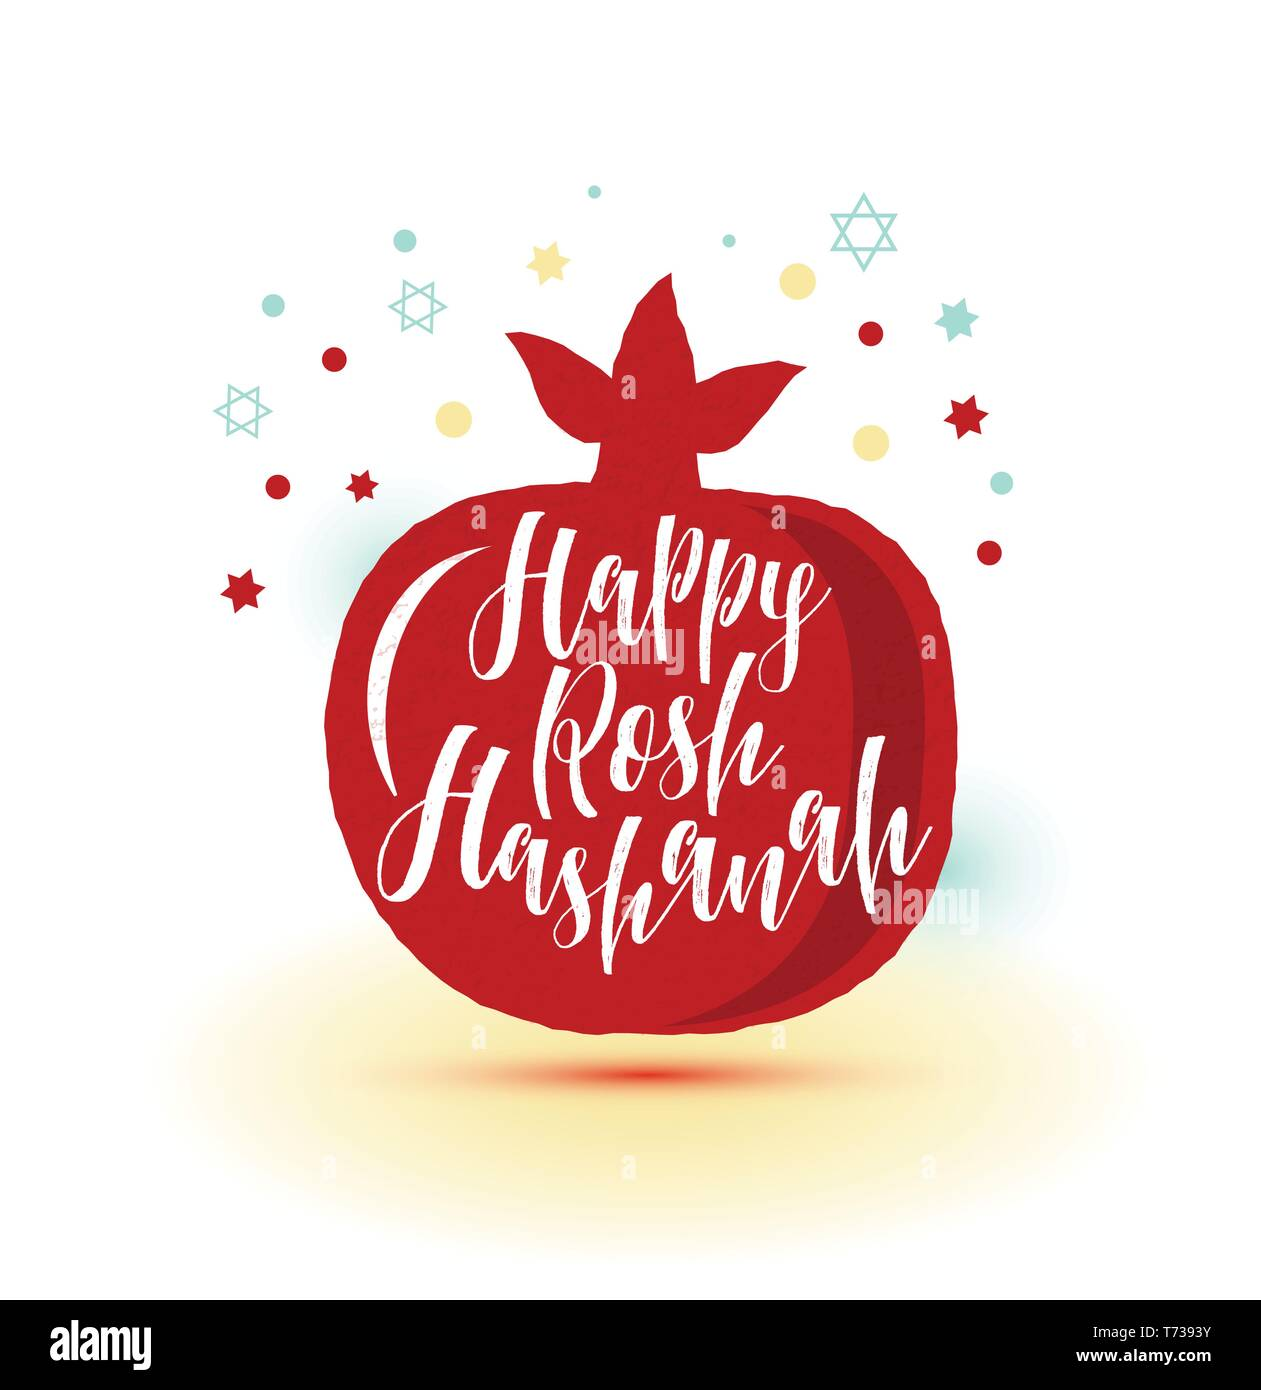 Greeting card wiyh symbol of Rosh Hashanah pomegranate . Jewish new year celebration design. Happy Shana Tova. - Stock Vector